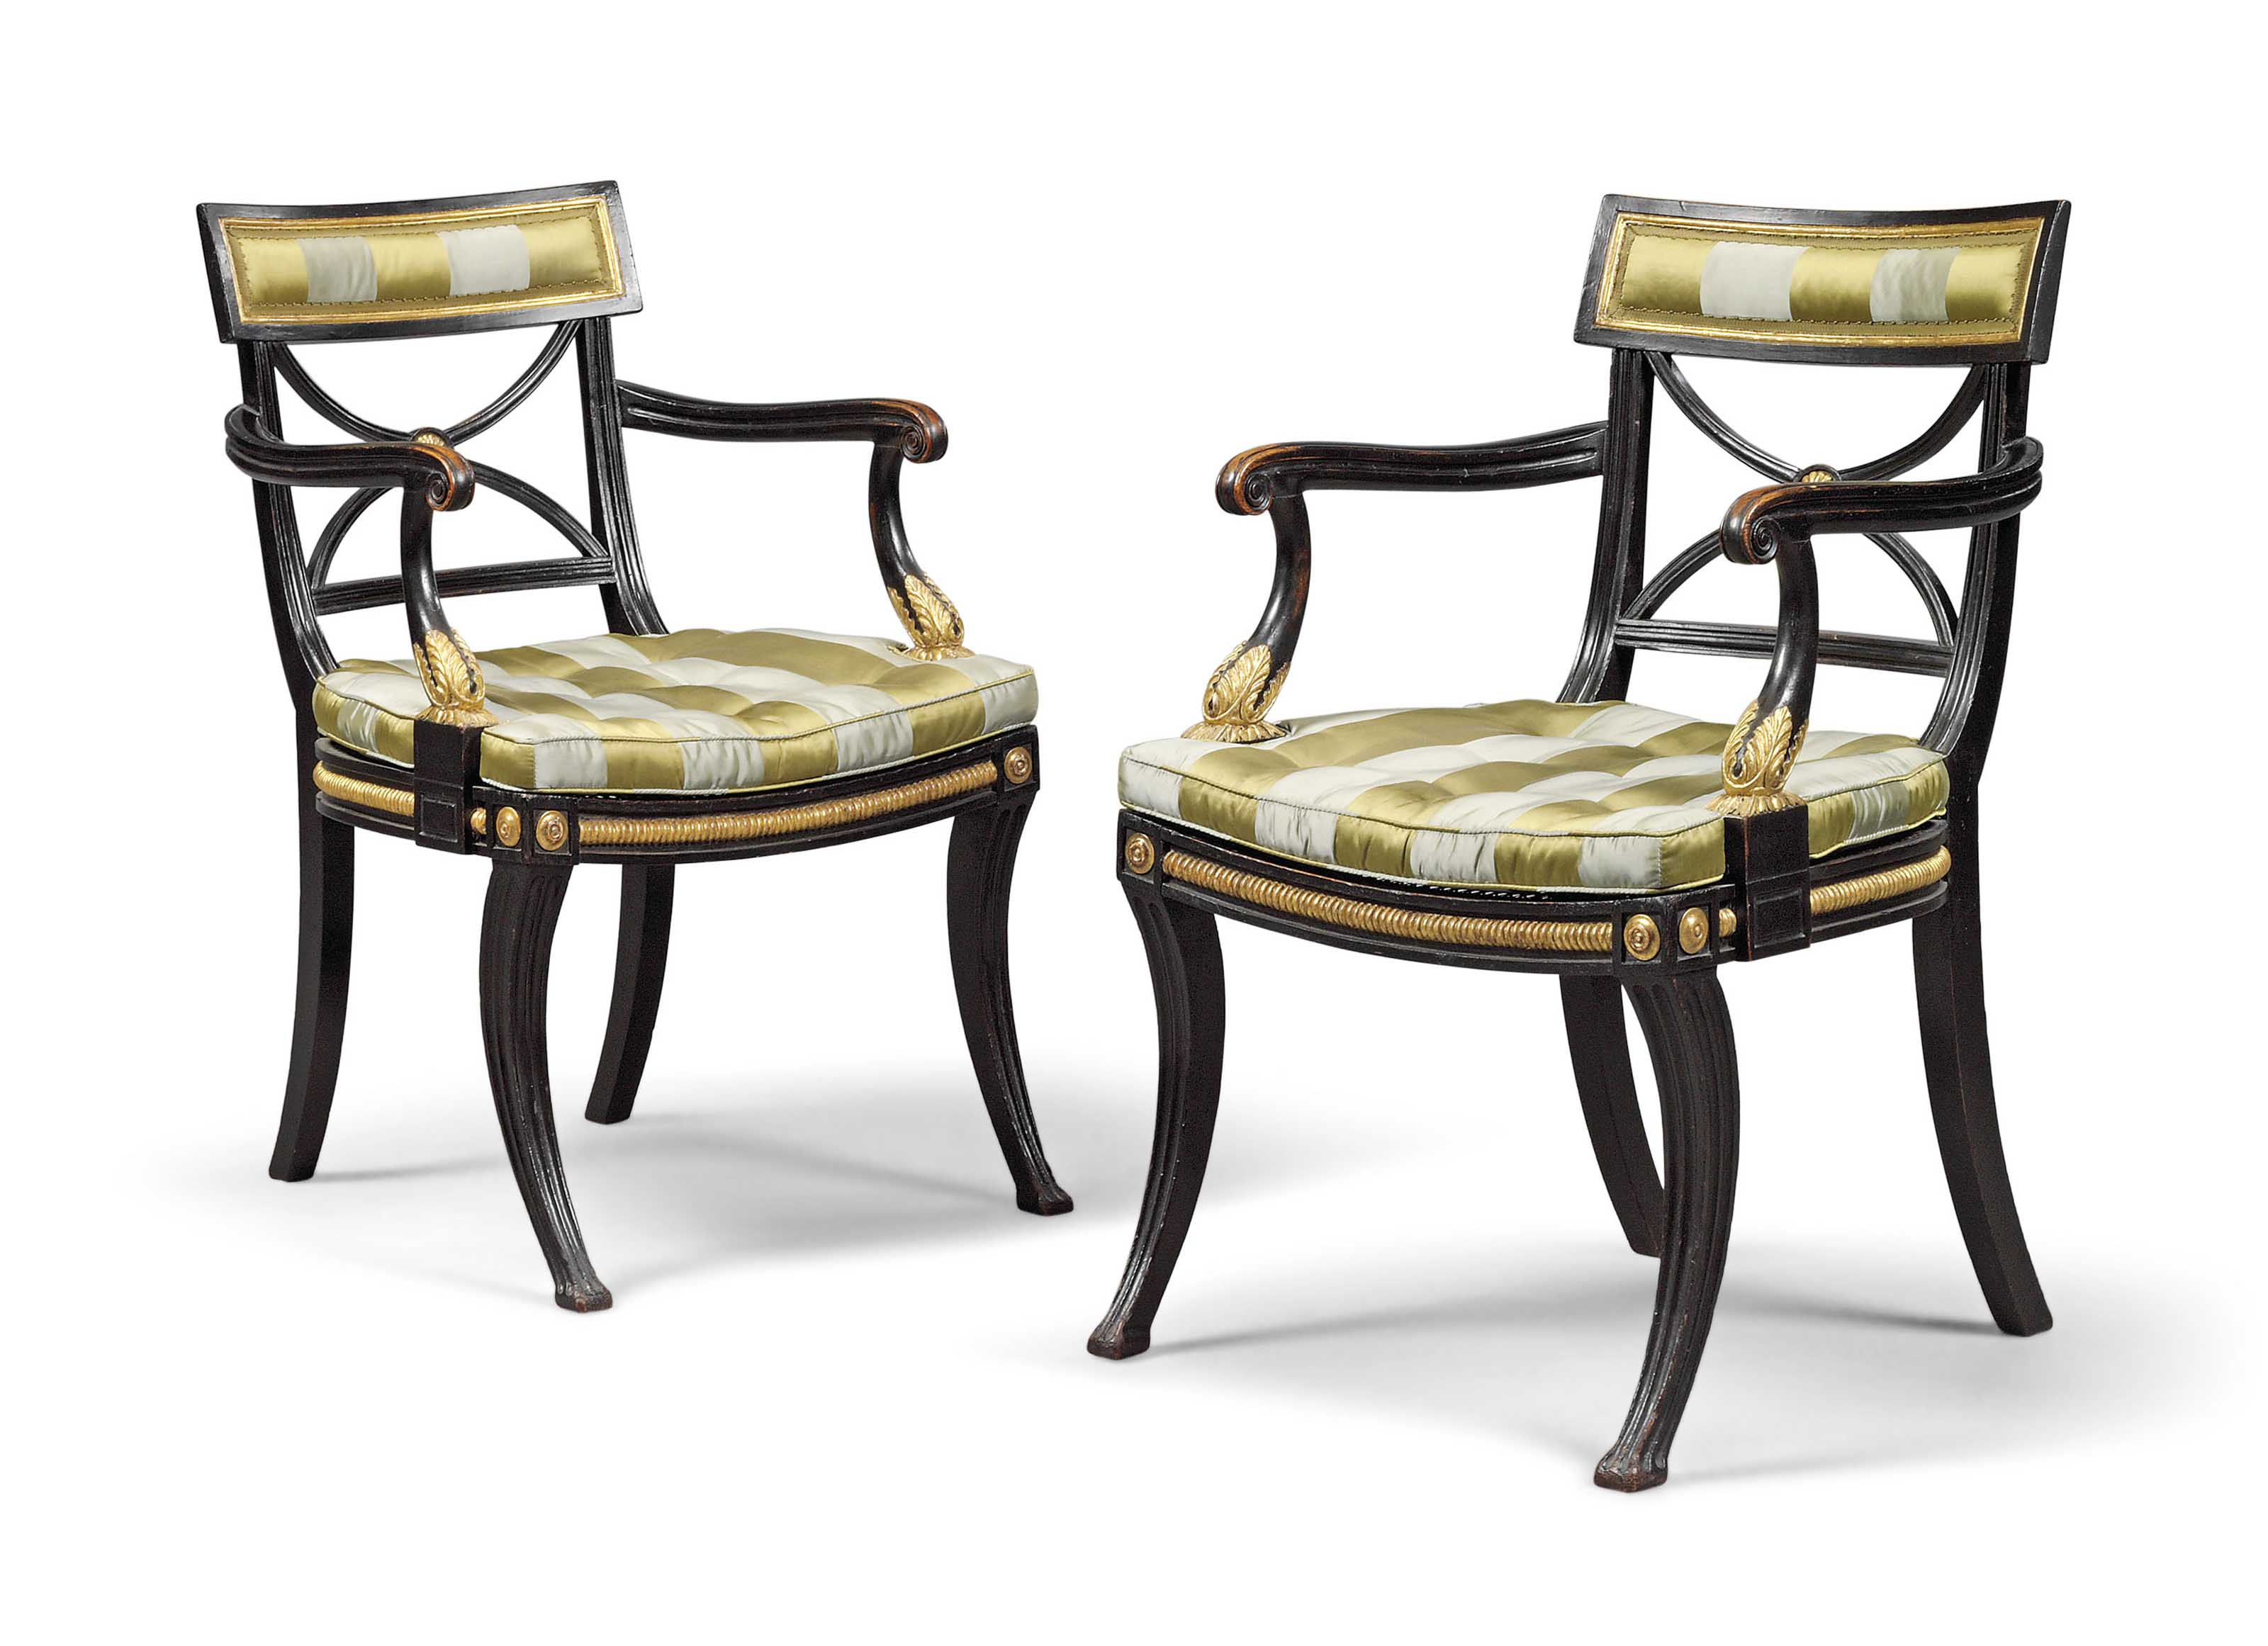 A PAIR OF REGENCY EBONISED AND PARCEL-GILT OPEN ARMCHAIRS